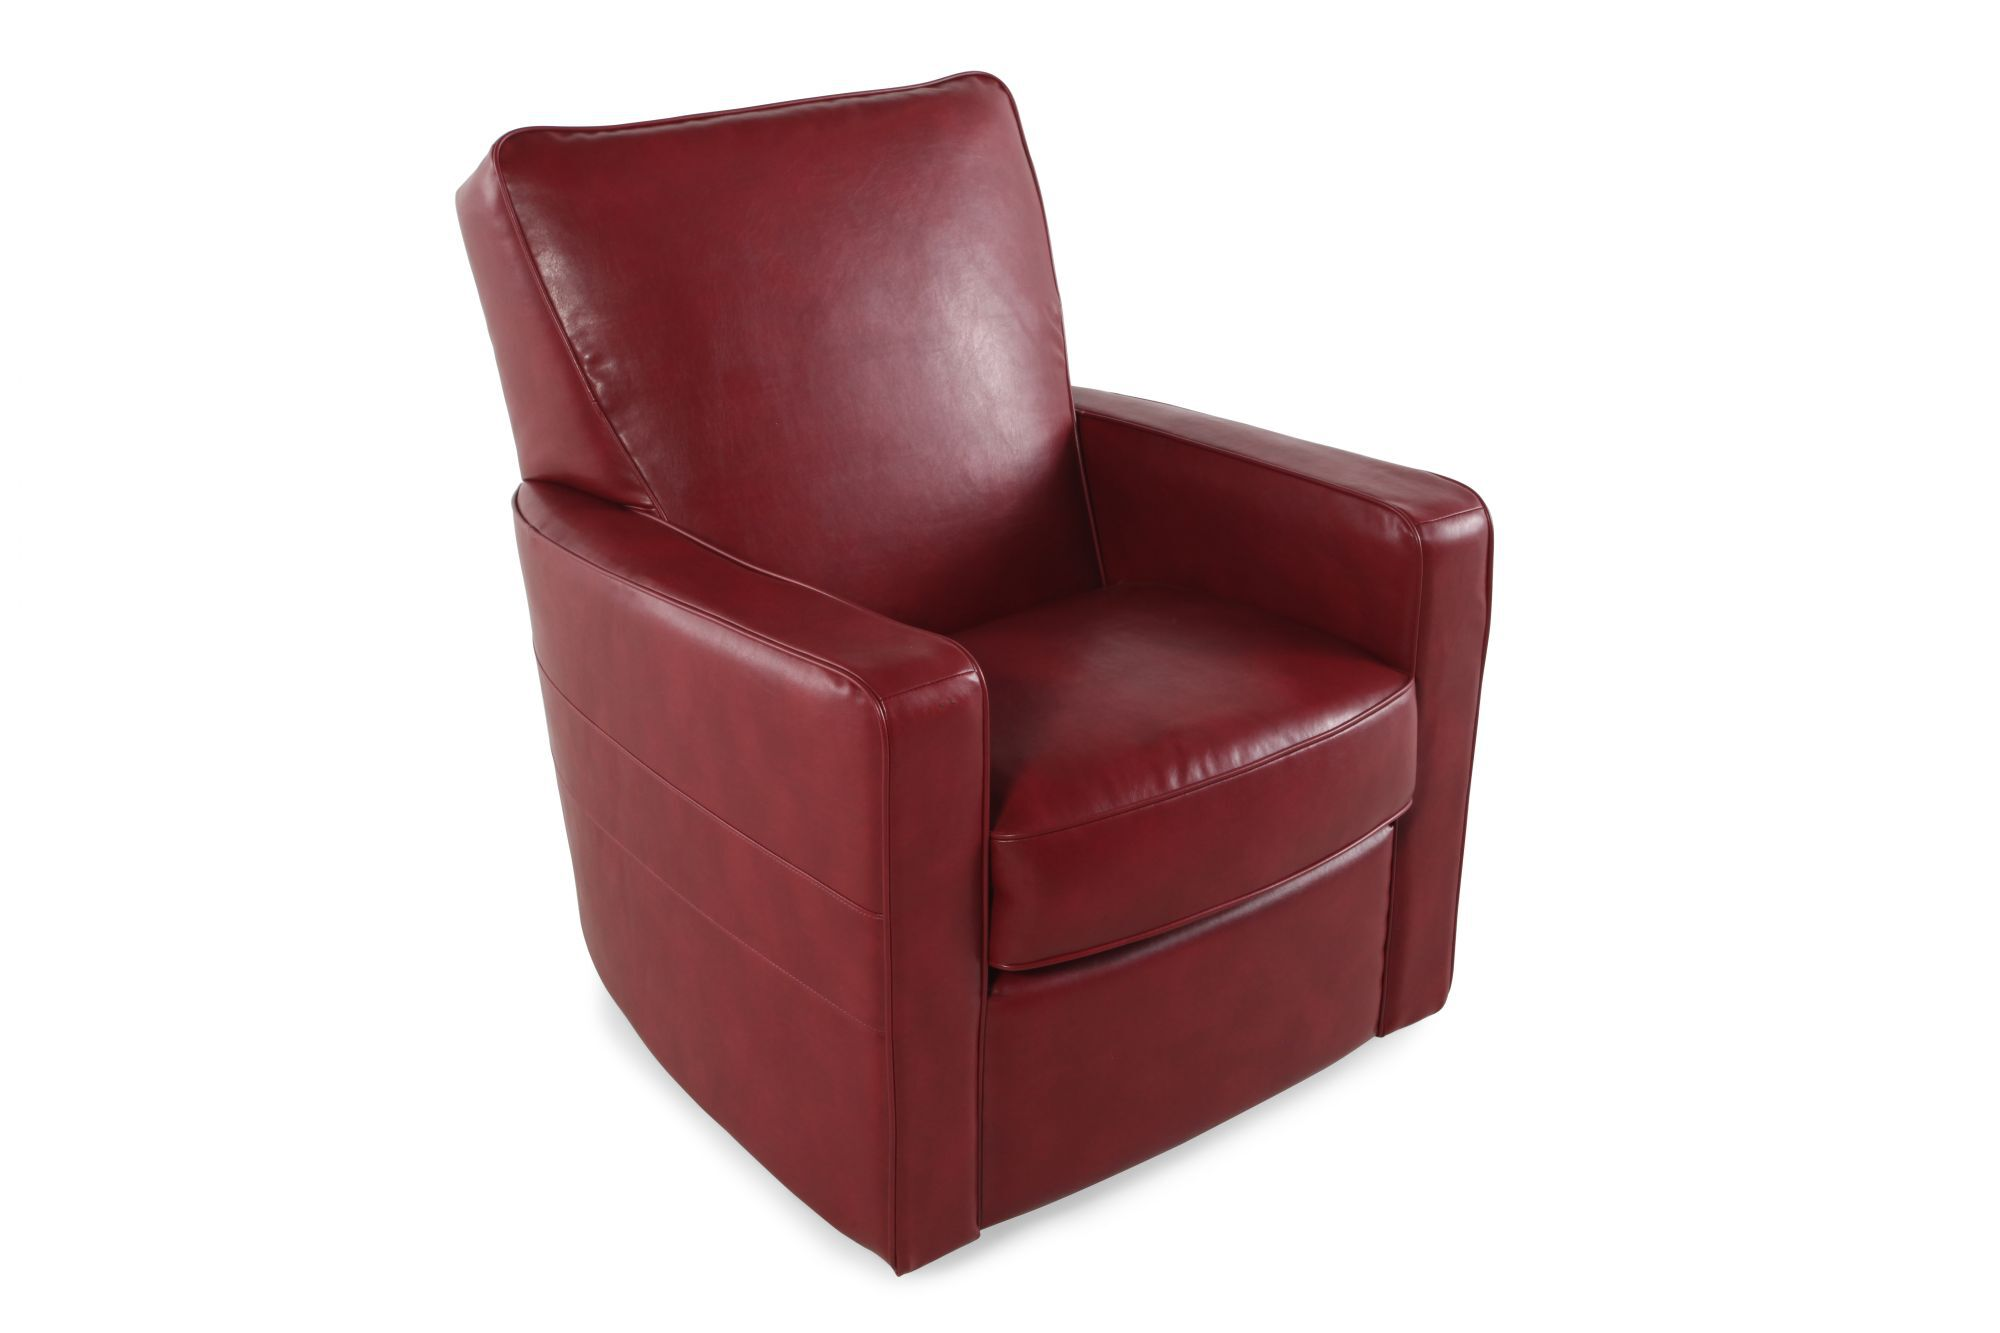 Low Profile Contemporary Swivel Glider Recliner In Berry